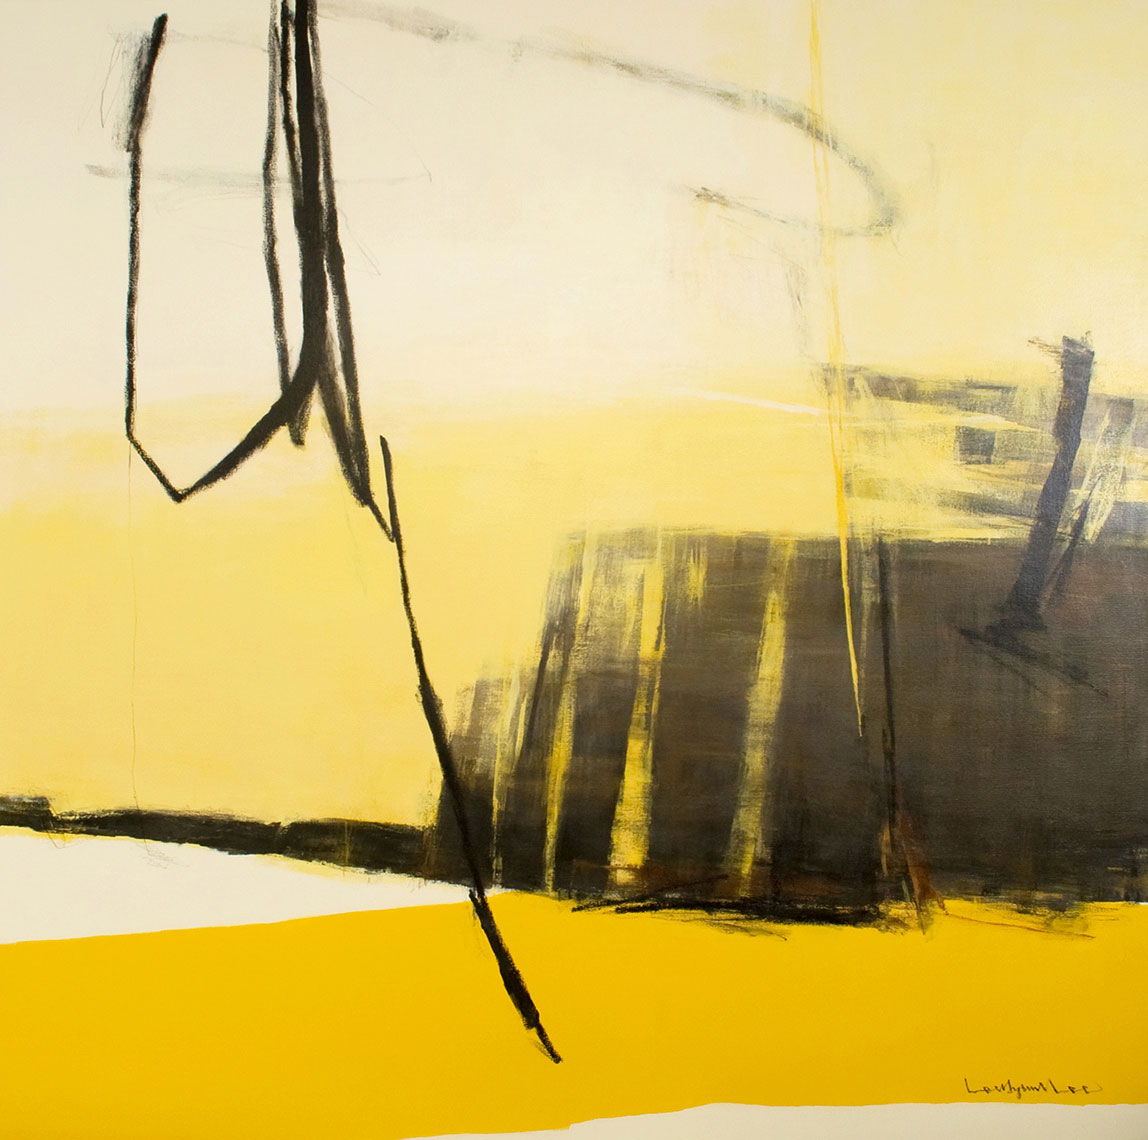 INLAND ISLAND 49.   acrylic on canvas.   72x72 inches.  2009